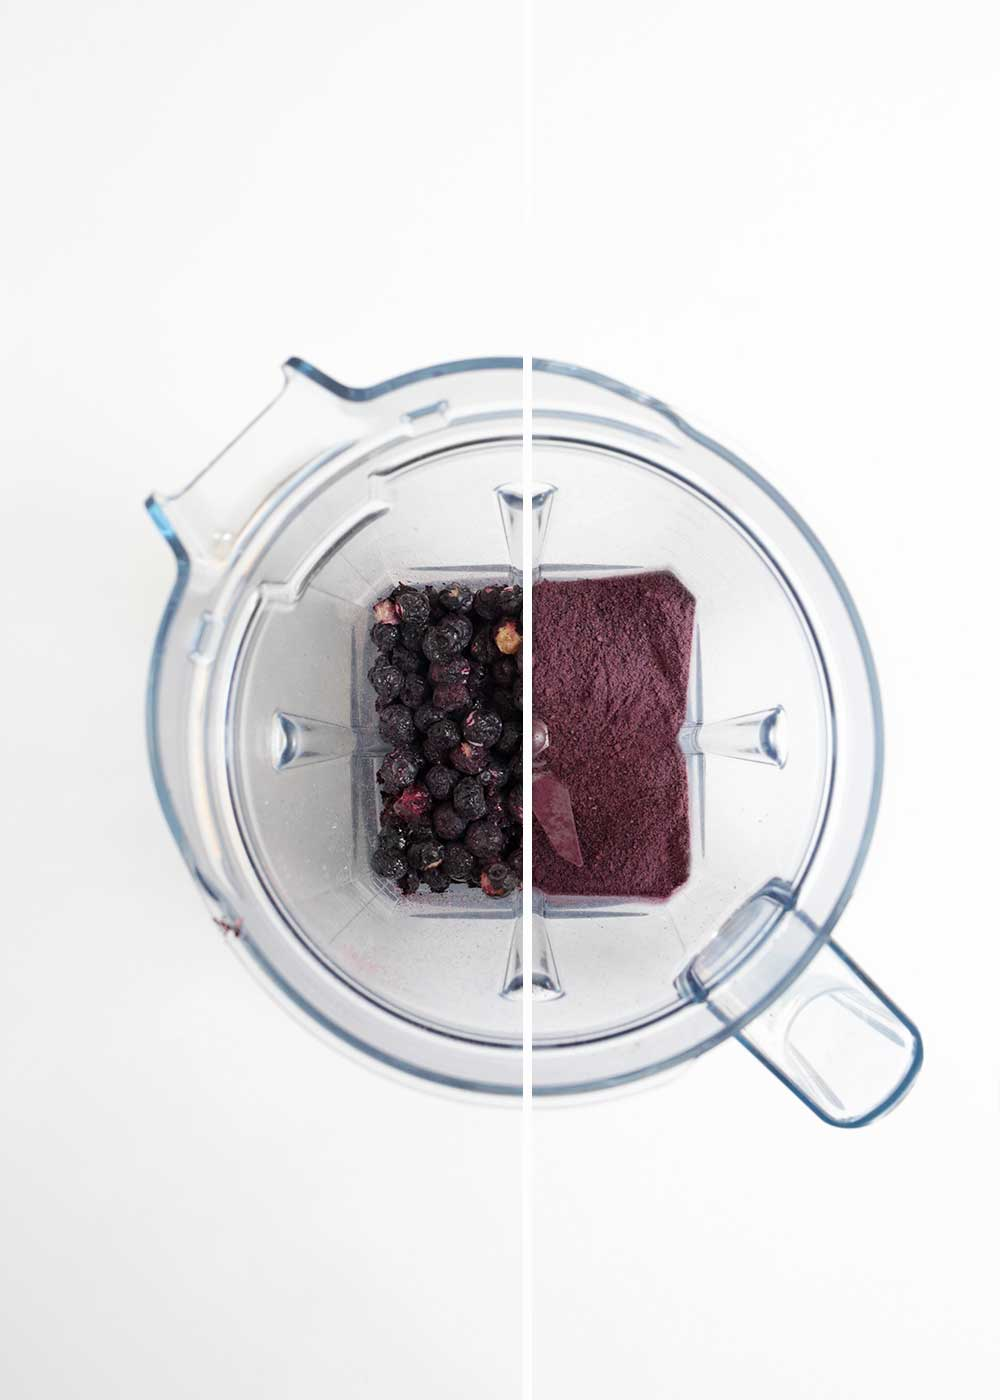 how to make blueberry powder from the faux martha